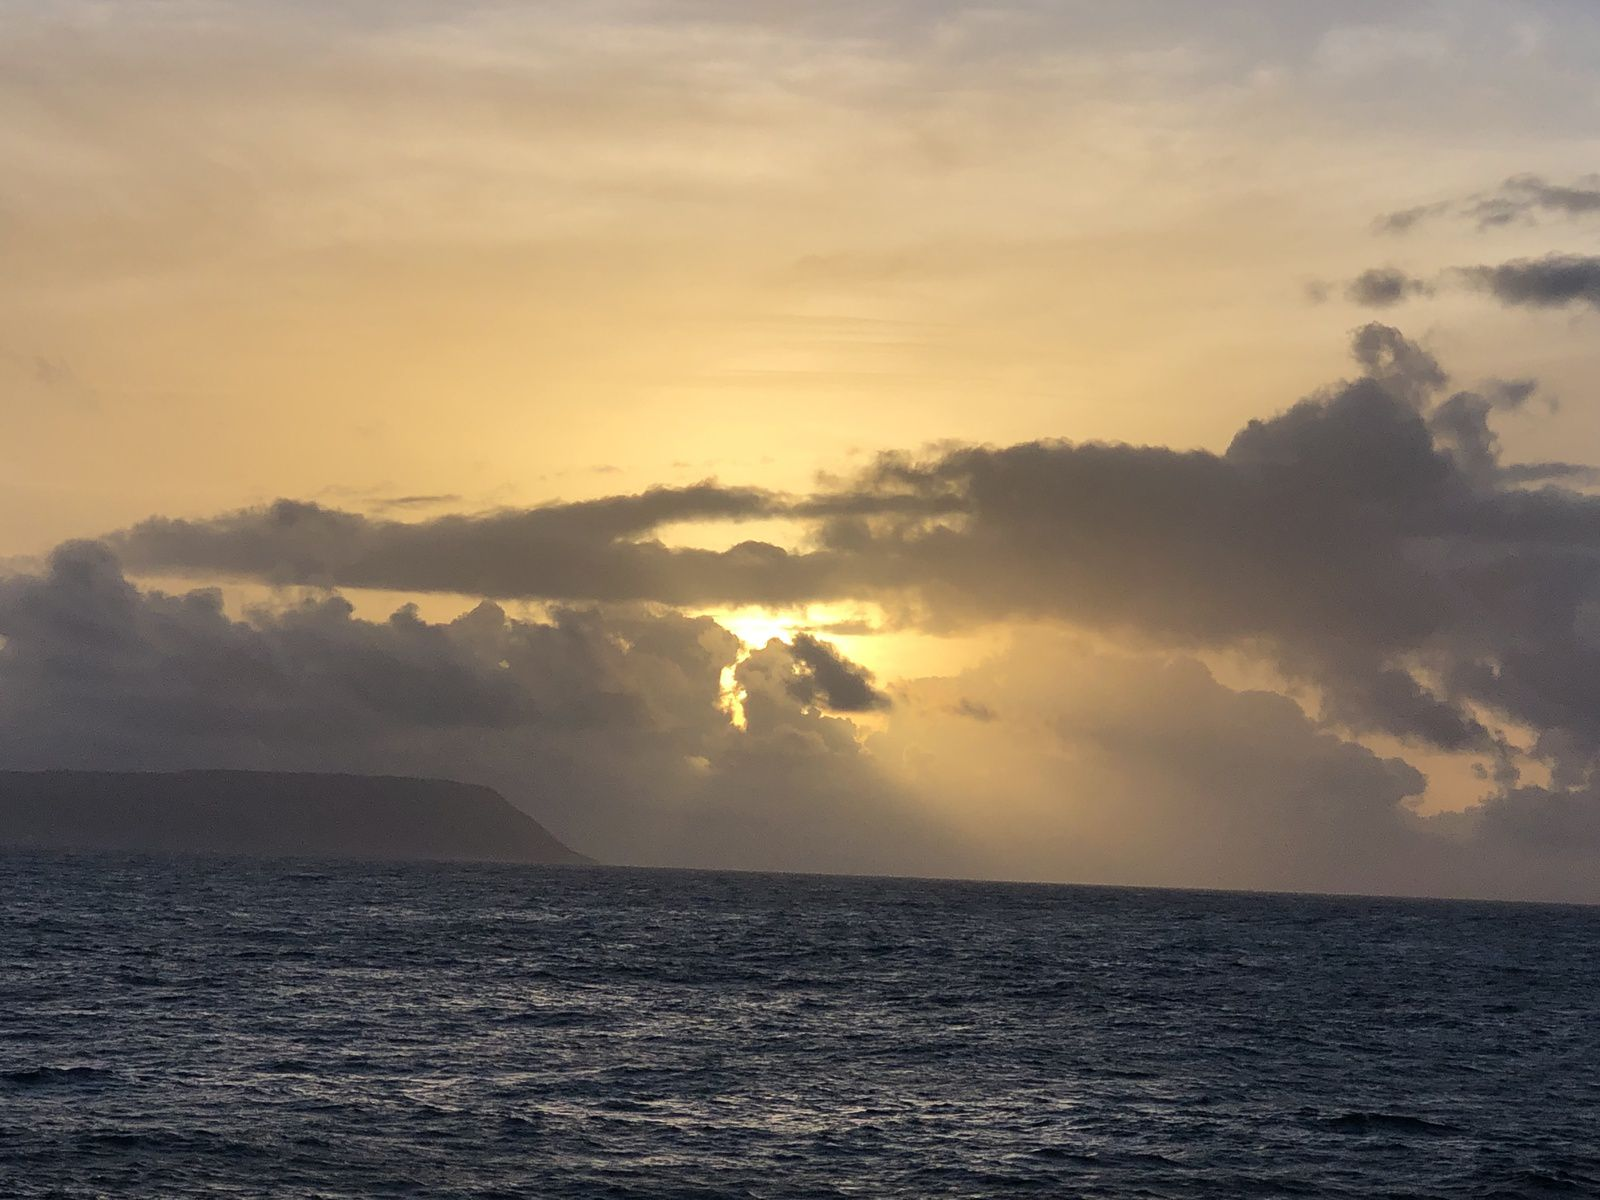 Morning Sun shining through clouds at Pointe des Châteaux